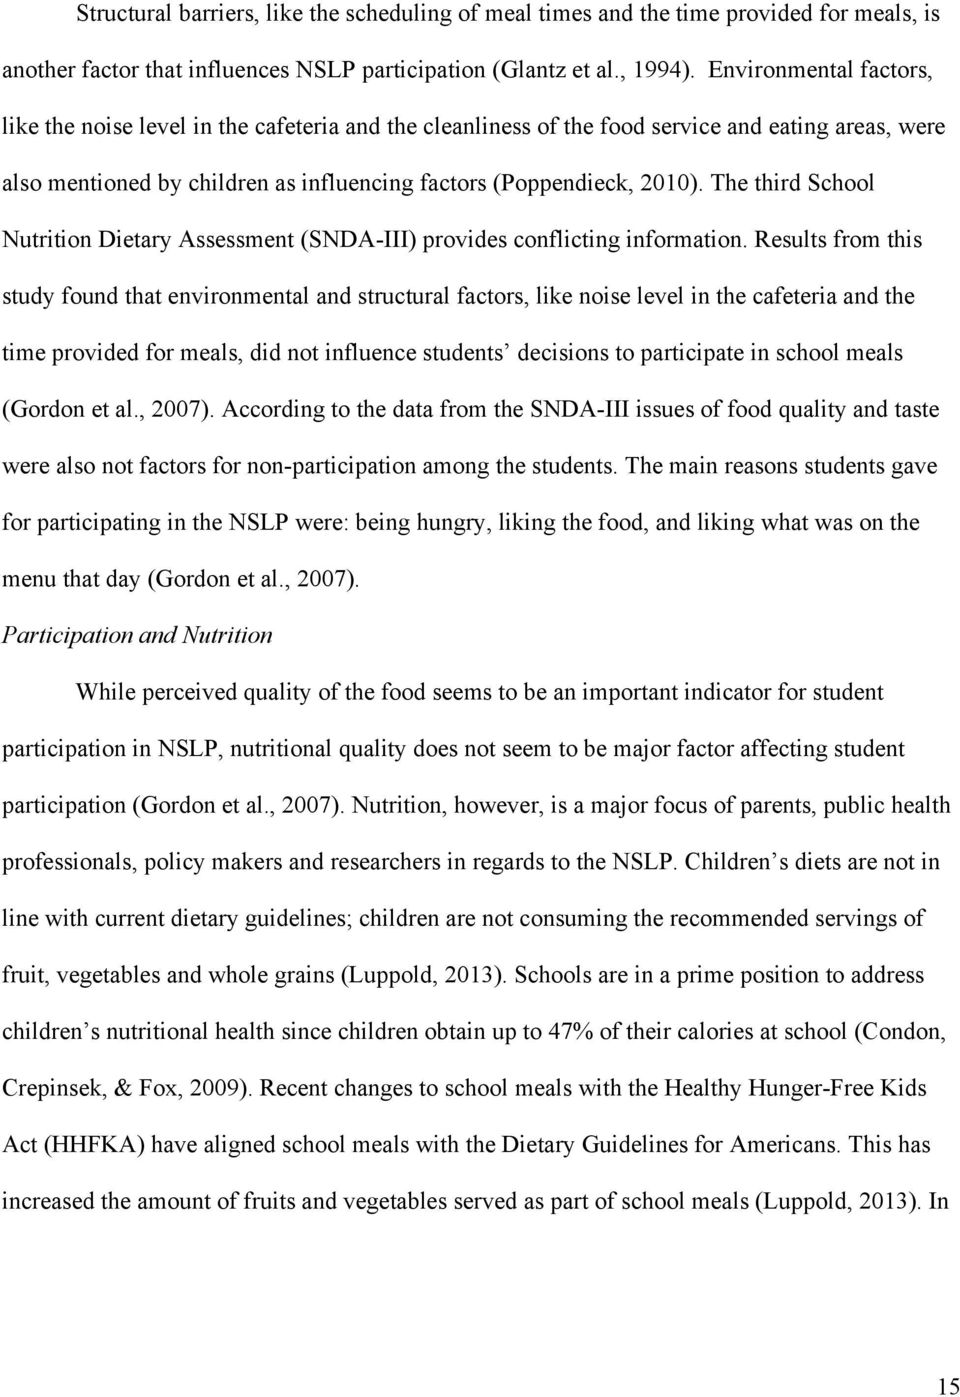 The third School Nutrition Dietary Assessment (SNDA-III) provides conflicting information.